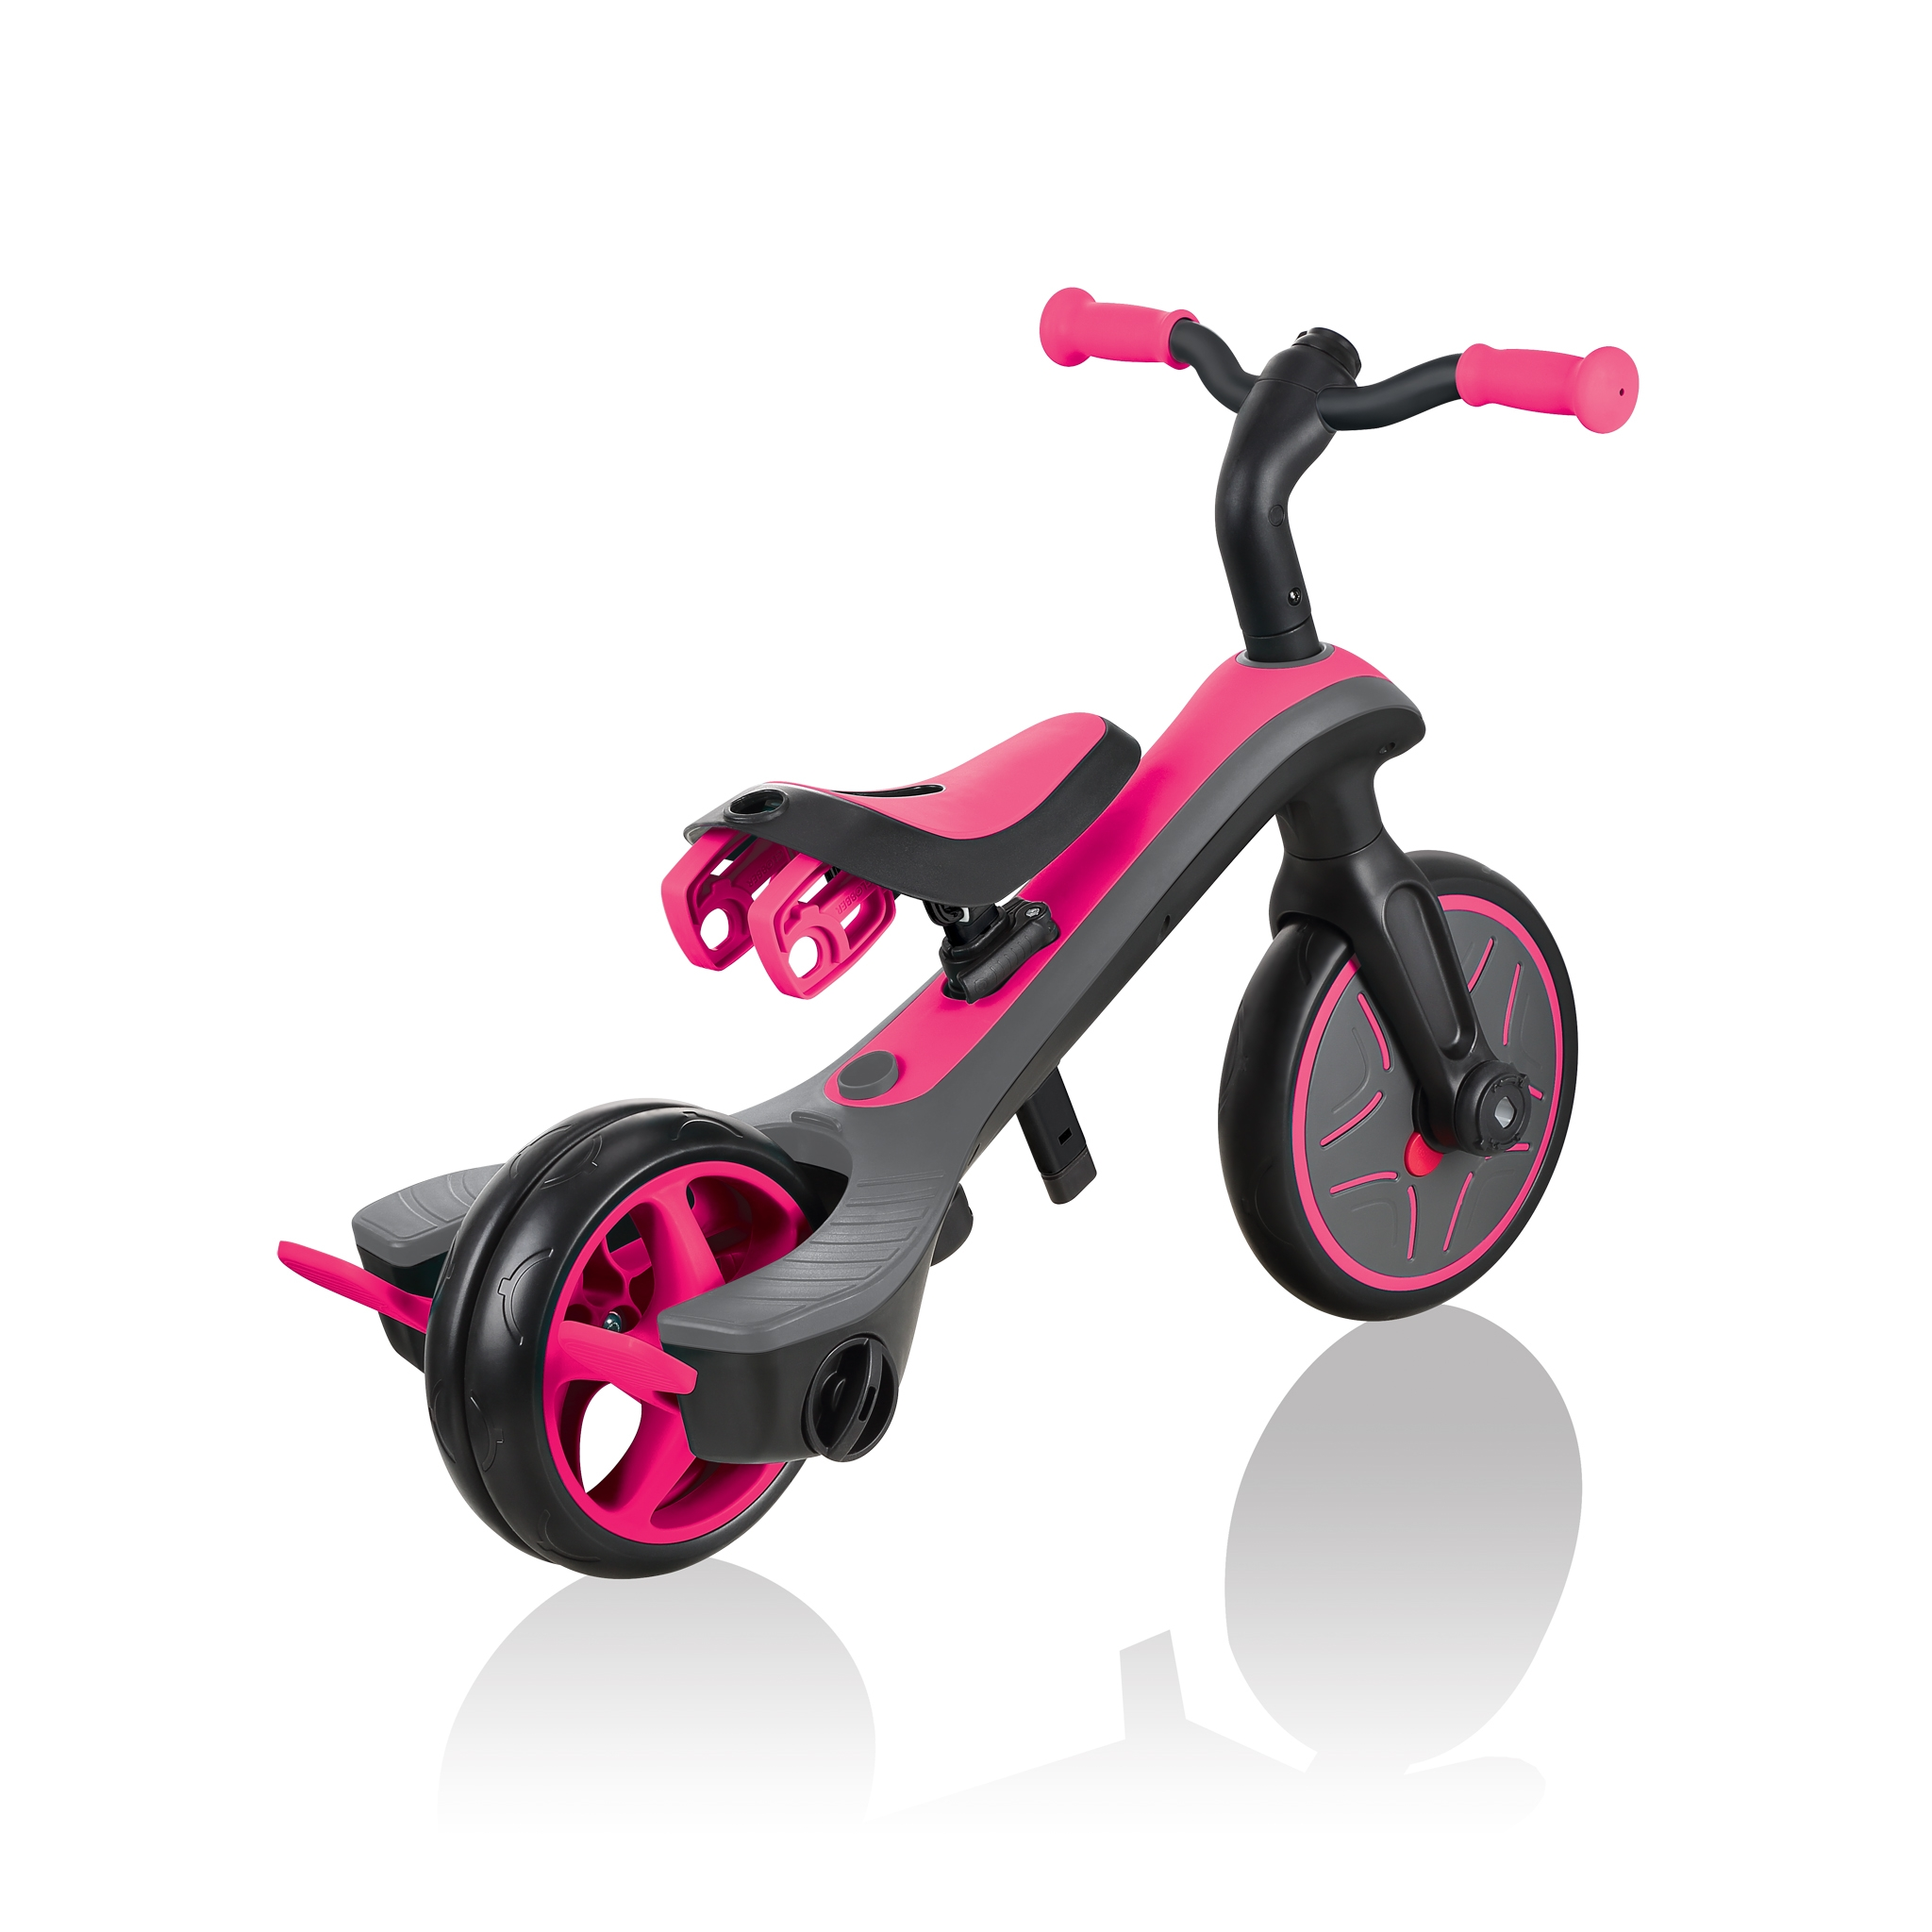 Globber-EXPLORER-TRIKE-4in1-all-in-one-baby-tricycle-and-kids-balance-bike-with-smart-pedal-storage